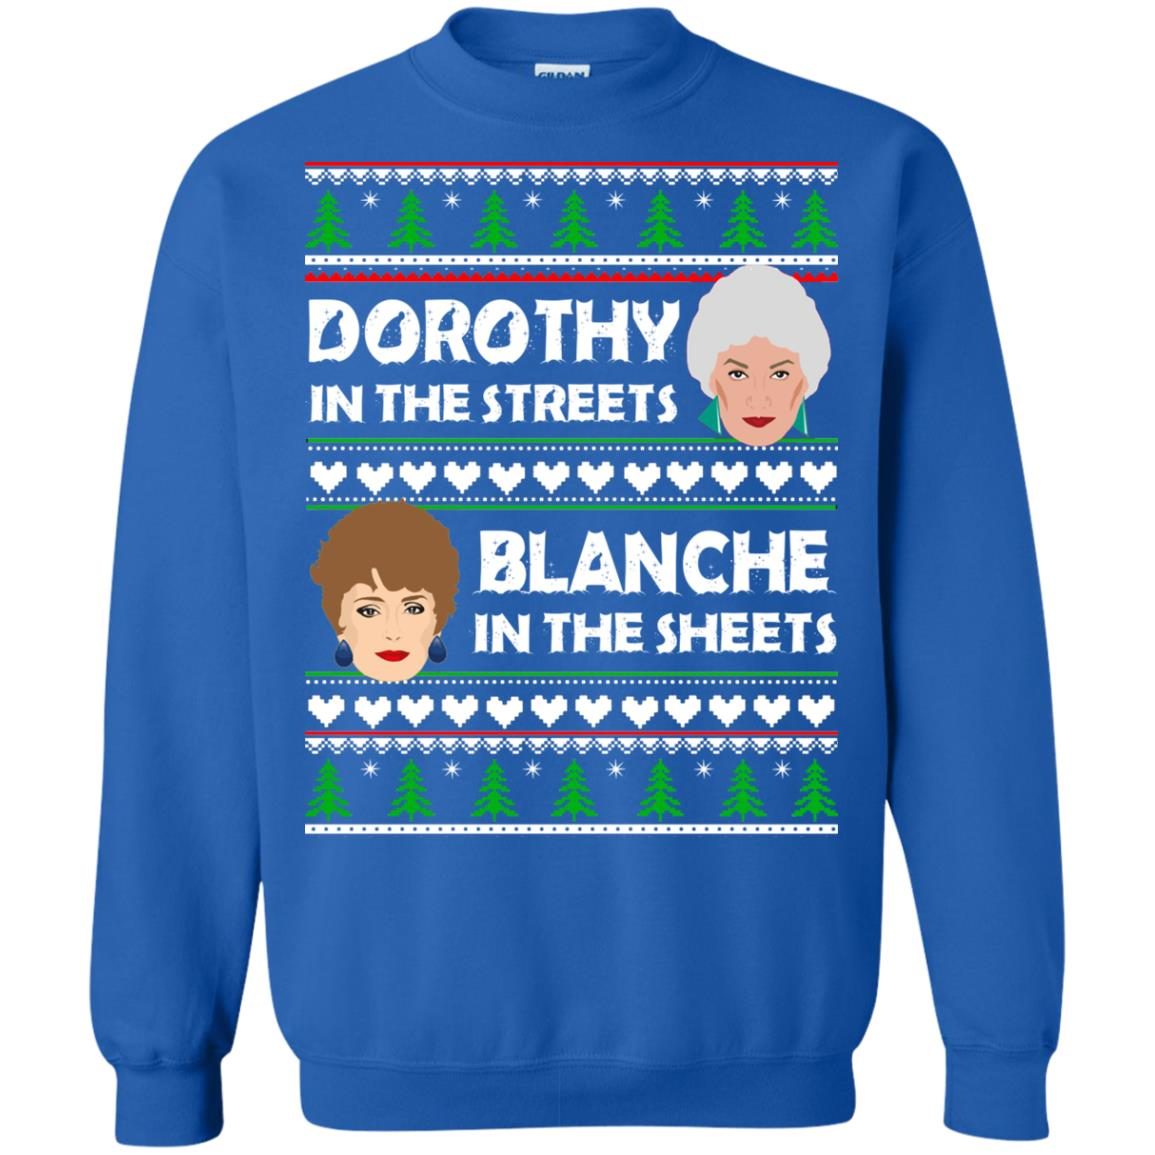 image 757 - Dorothy in the Streets Blanche in the Sheets Christmas Sweater